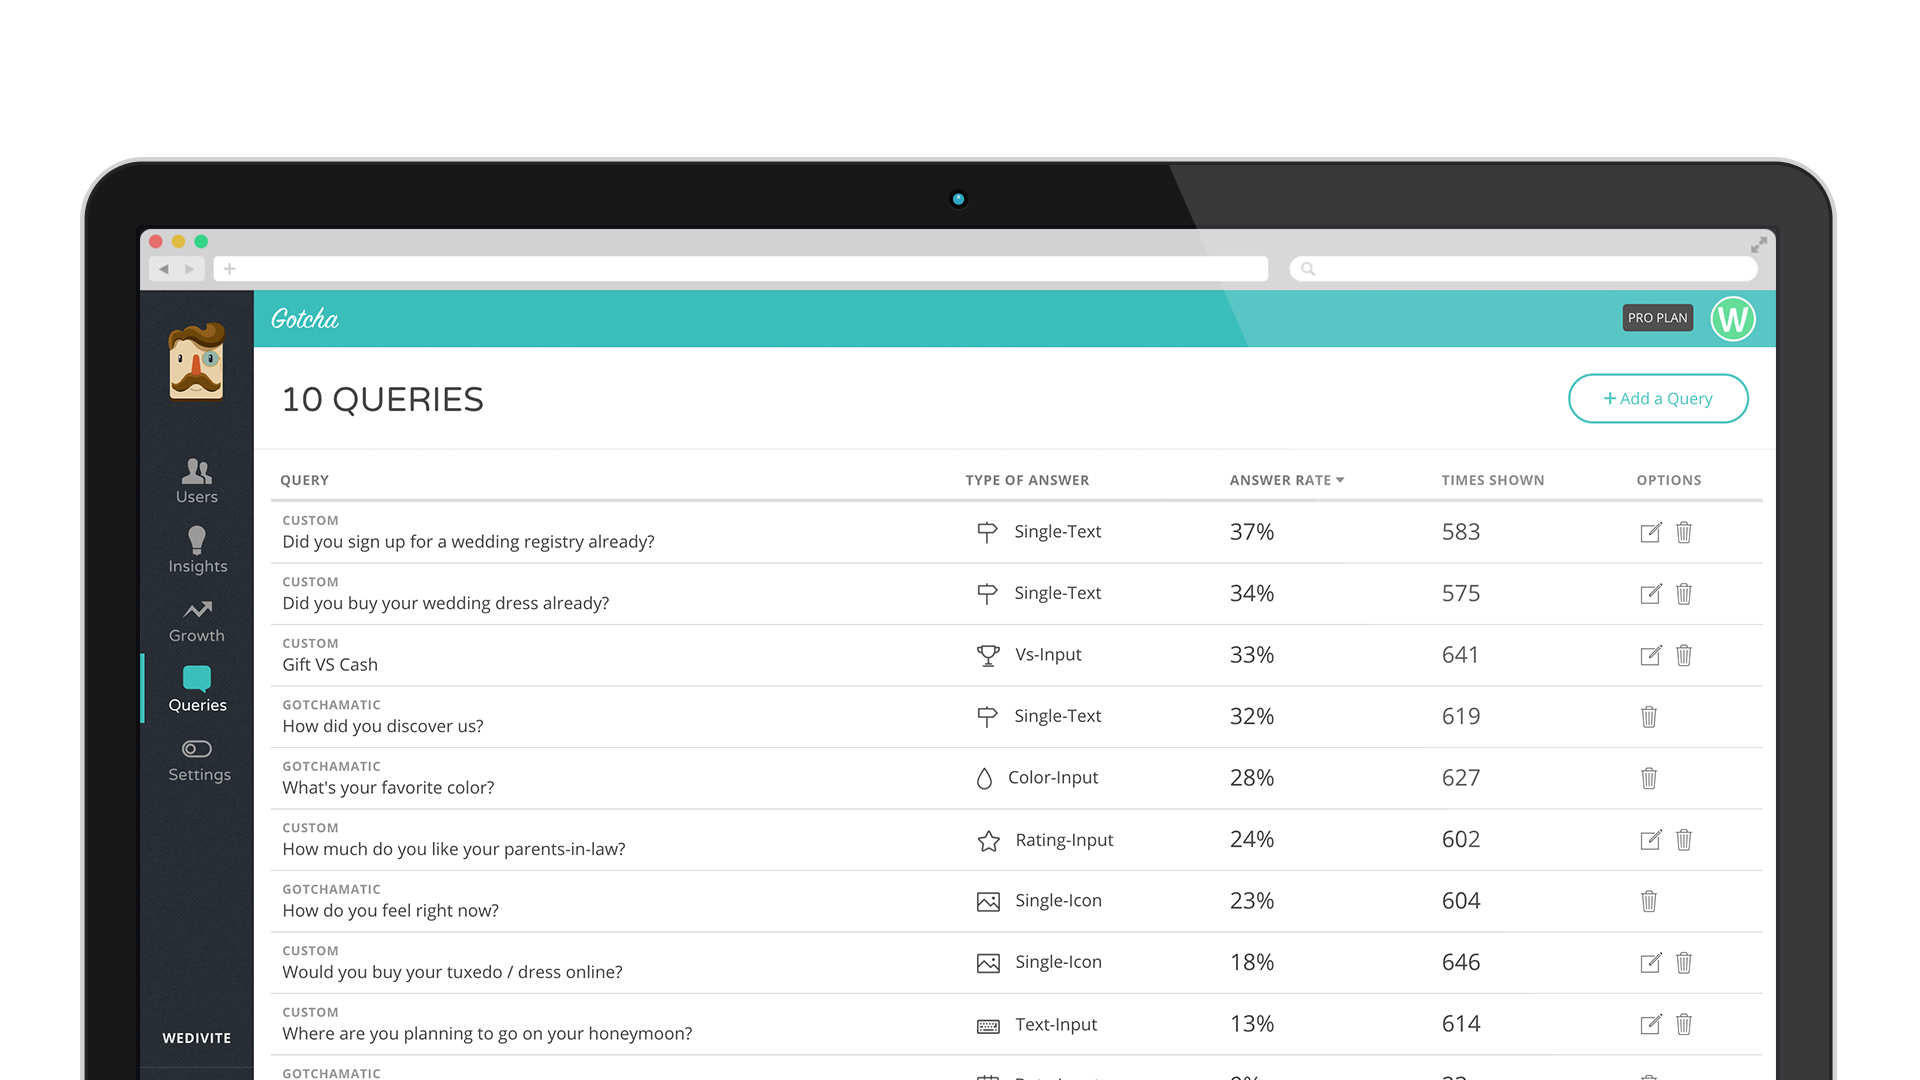 Gotcha.io Demo - Queries Dashboard